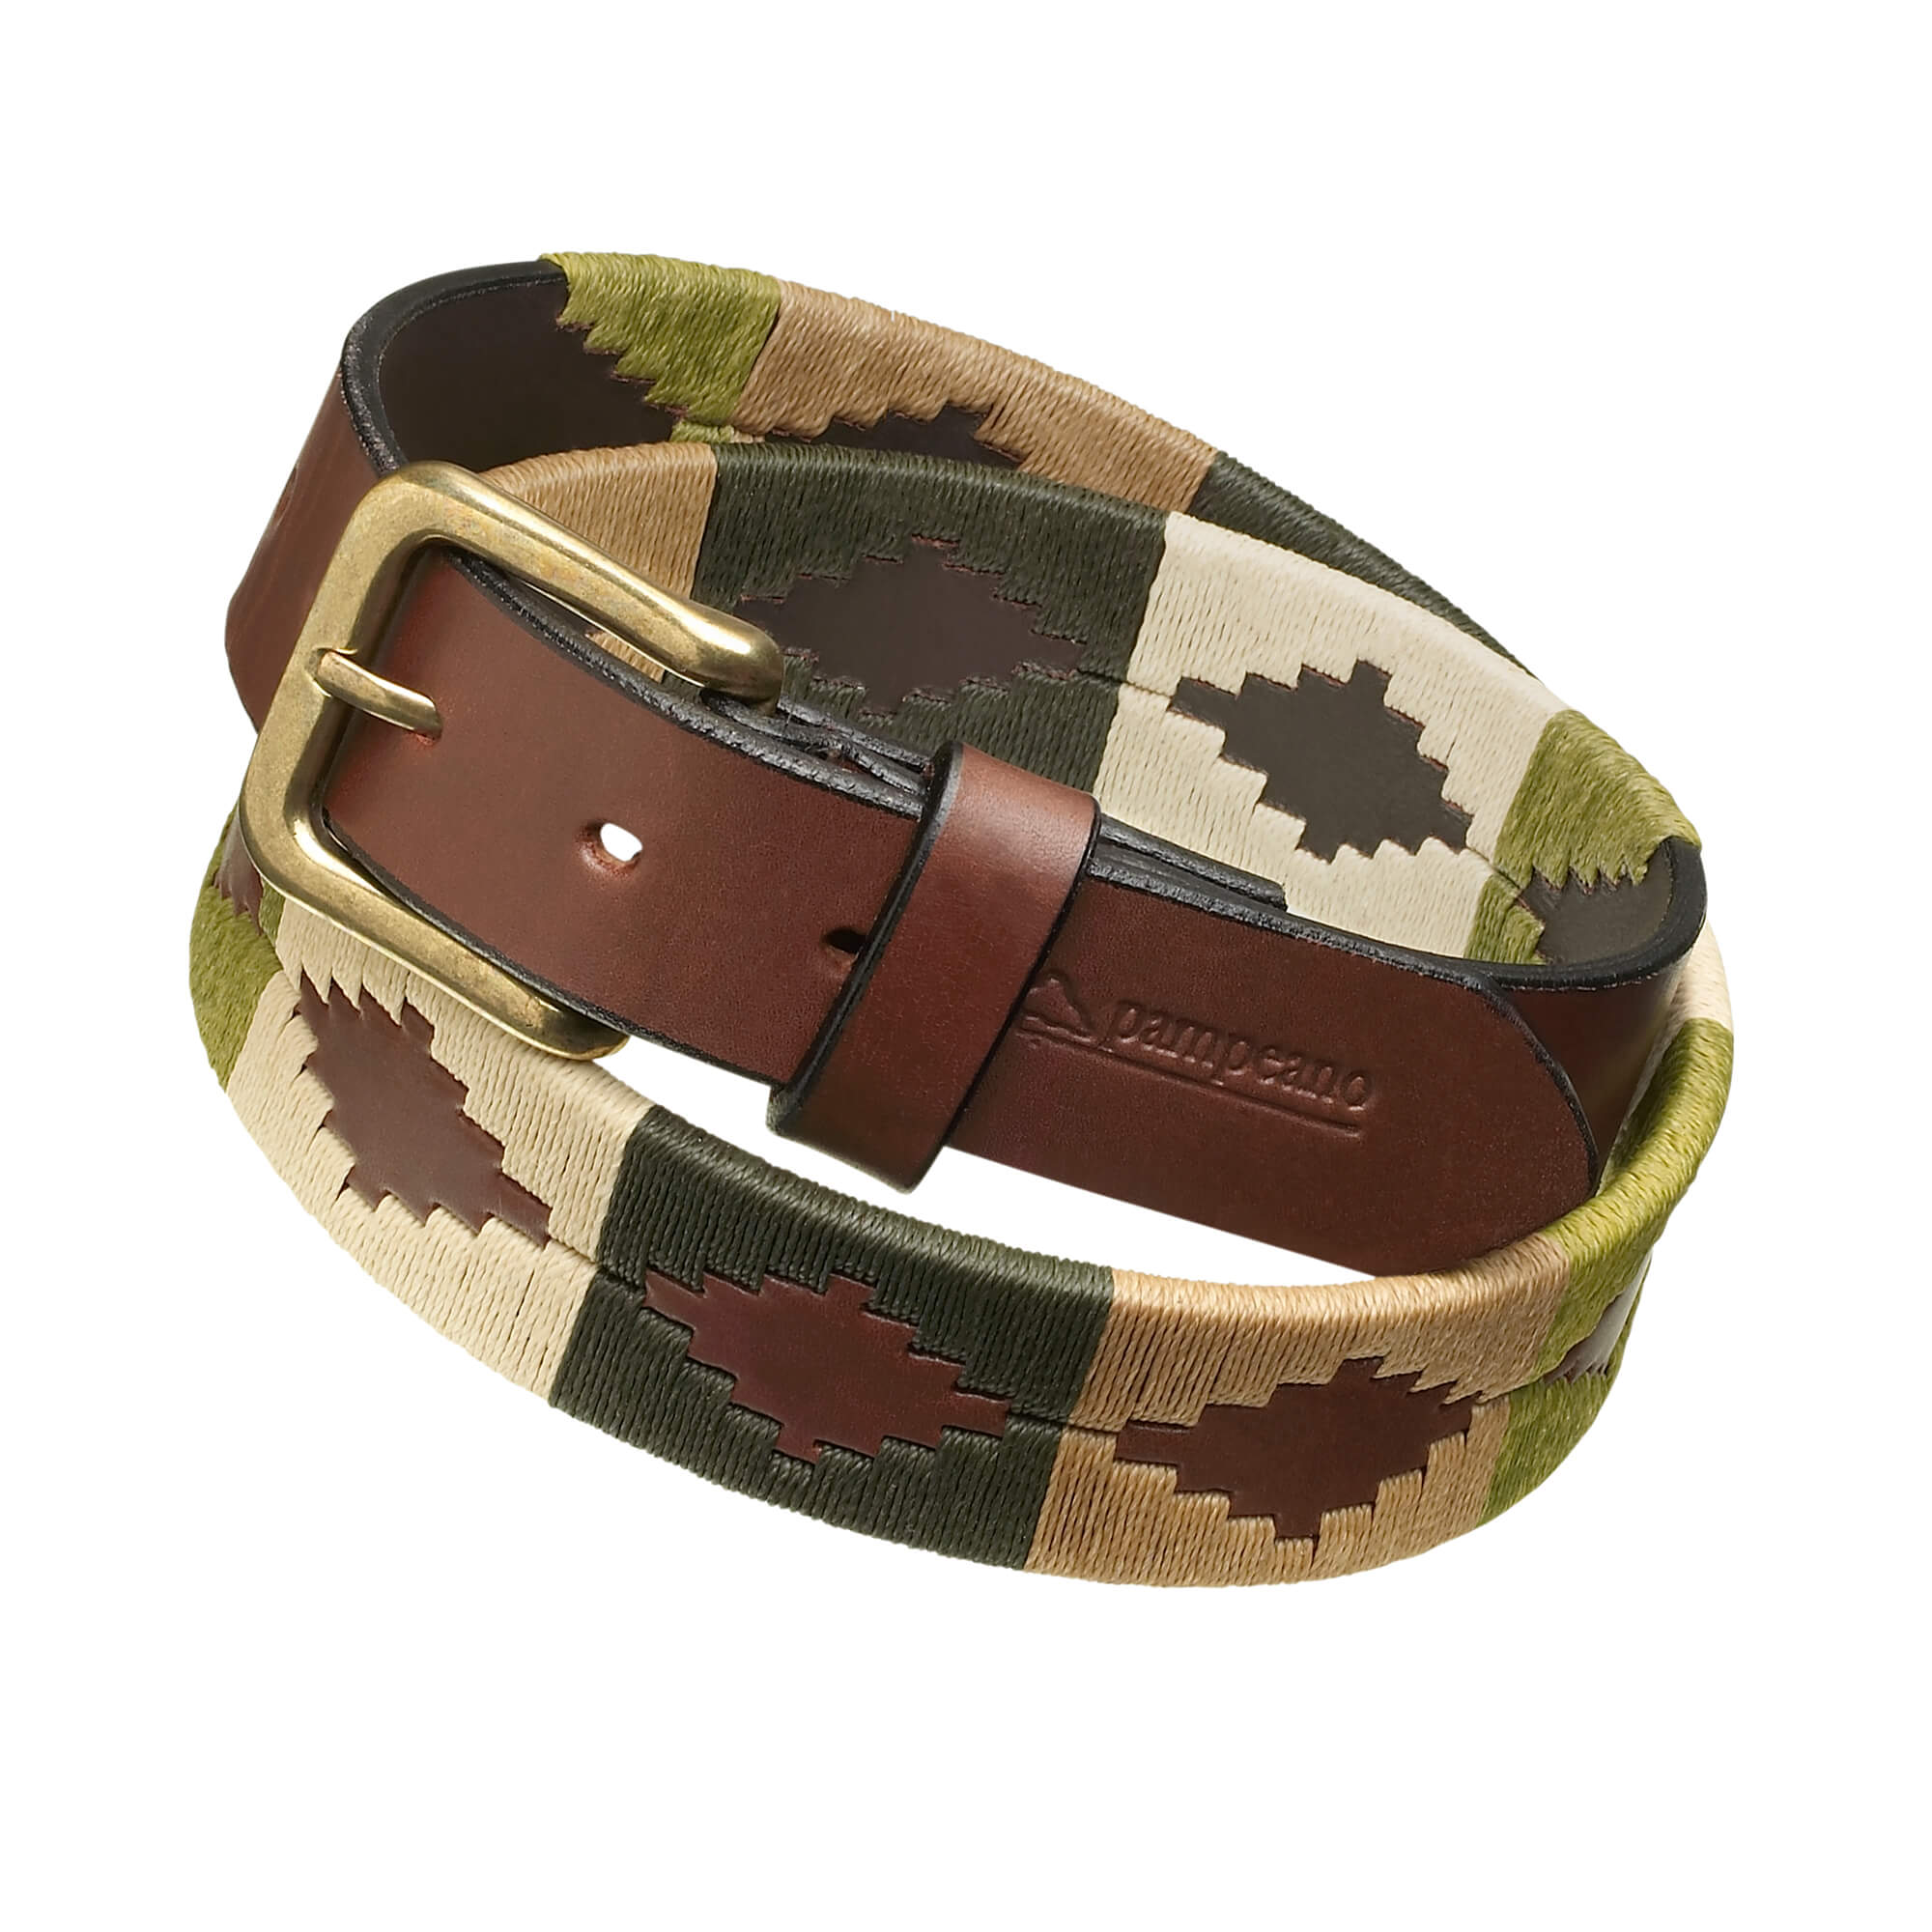 leather polo belts green brown valiente